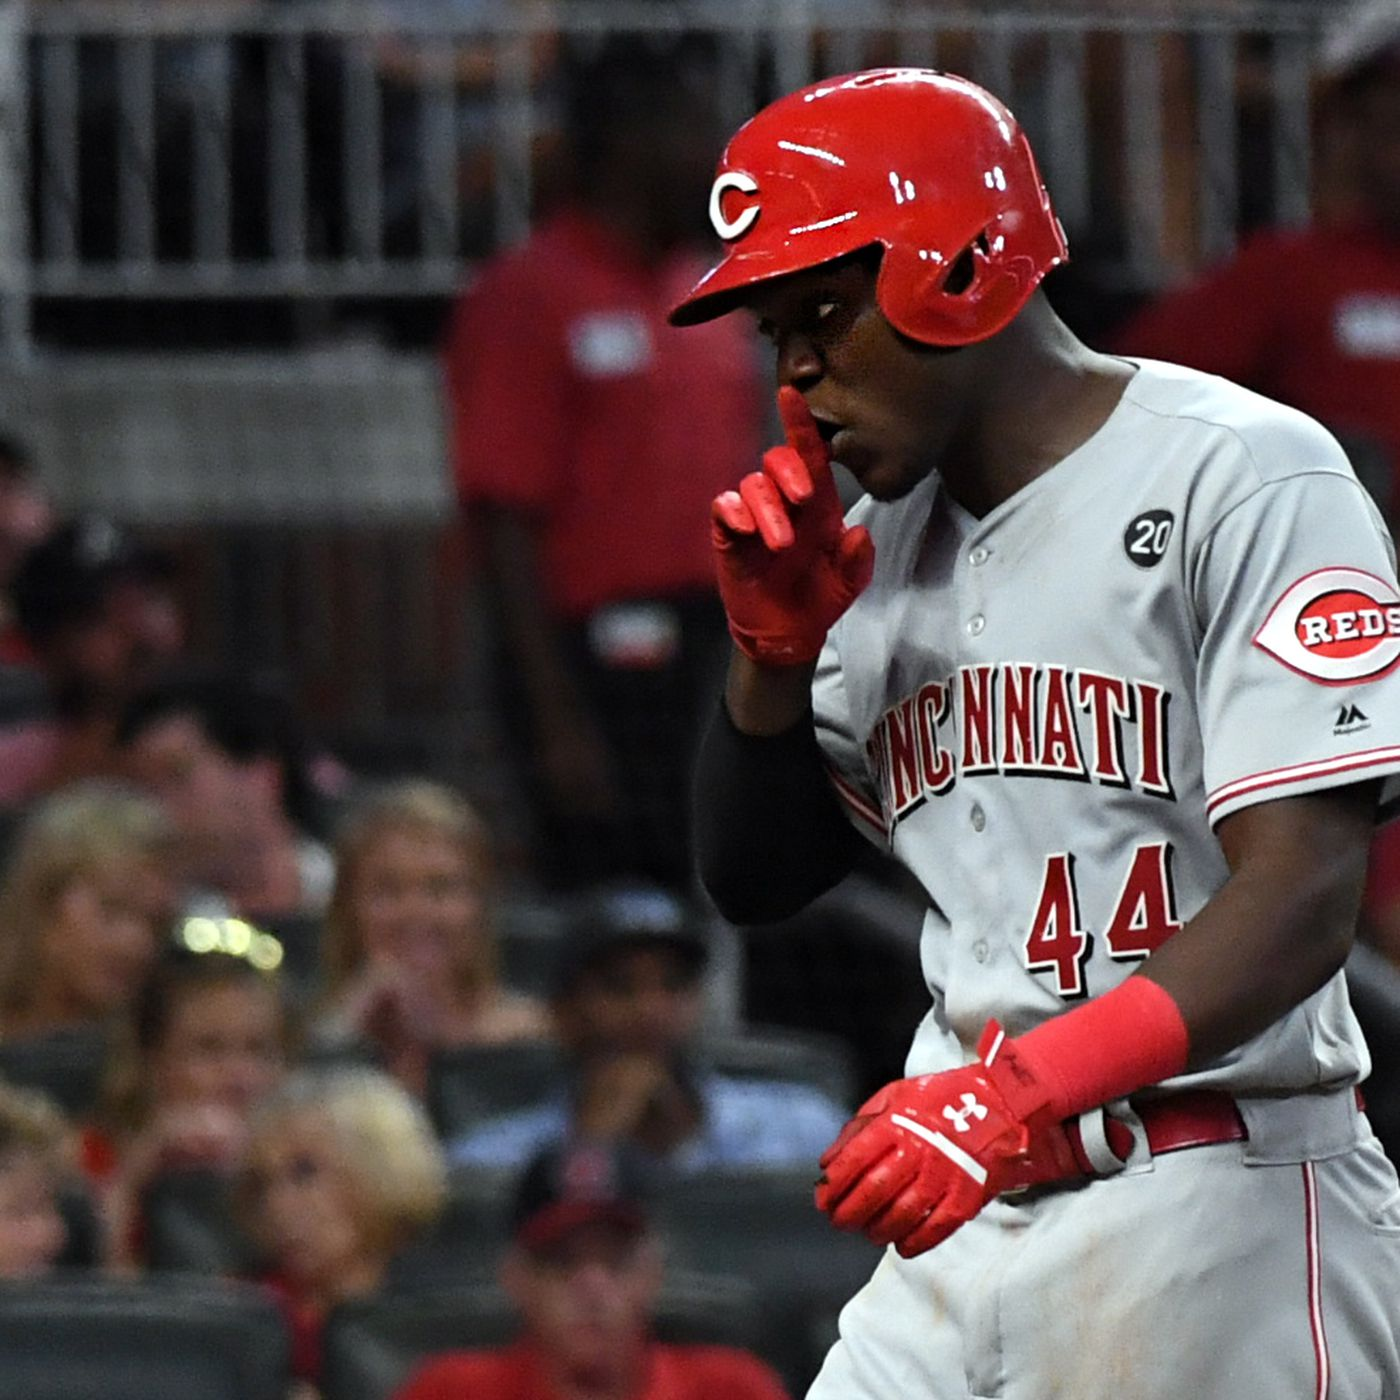 Reds Rookie Aristides Aquino storms into record books in MLB debut season